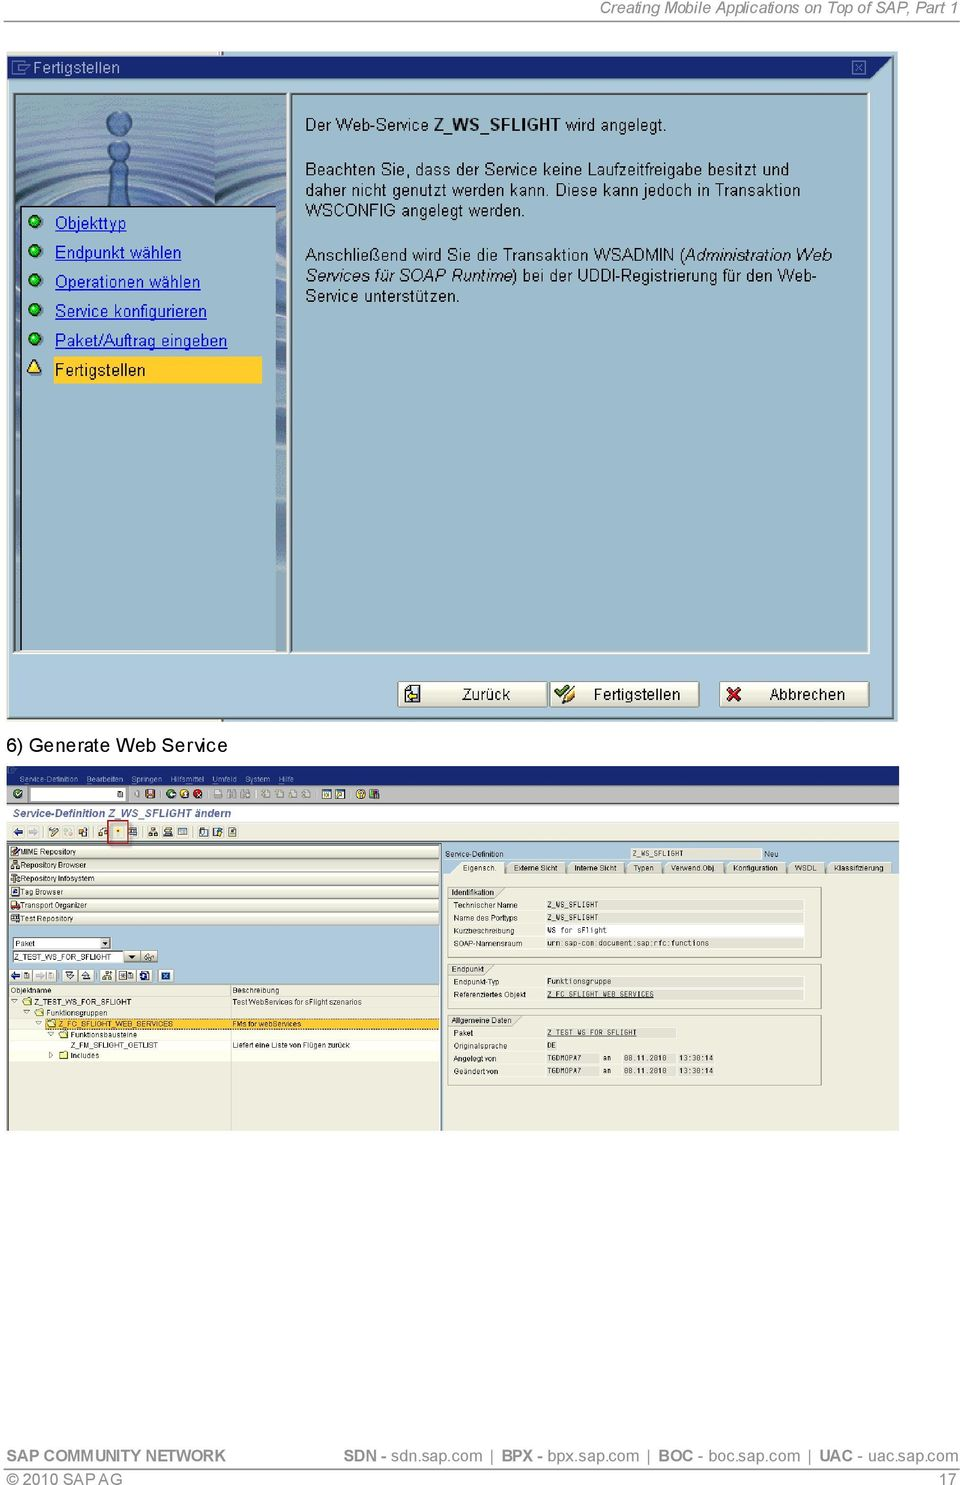 Creating Mobile Applications on Top of SAP, Part 1 - PDF